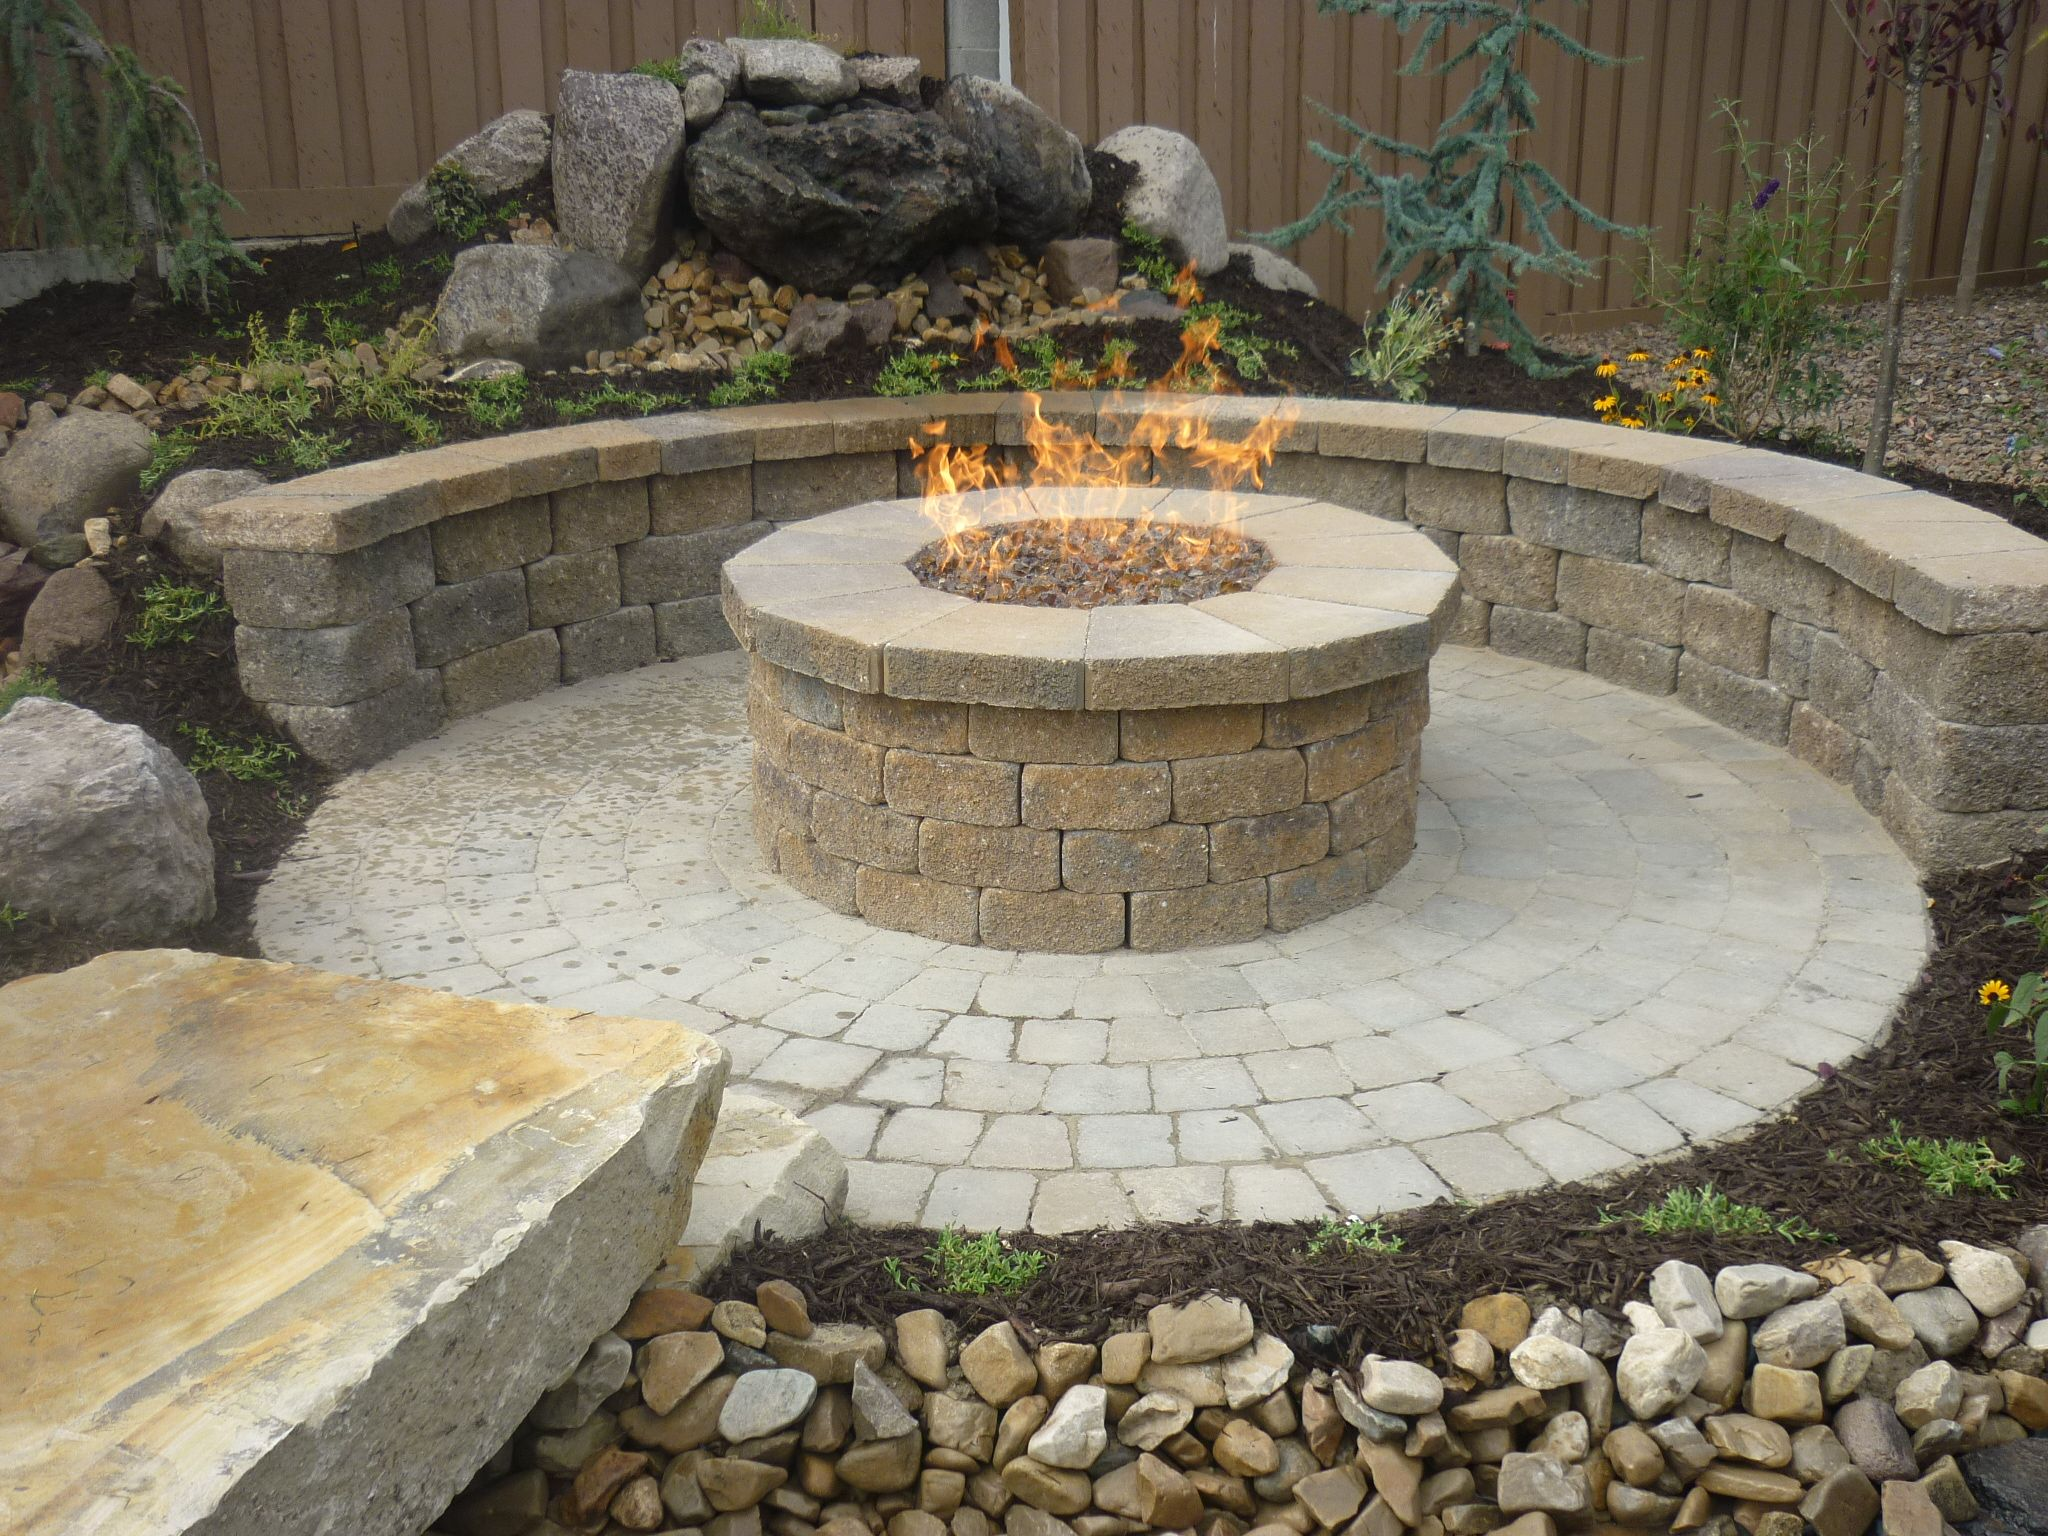 Stone fire pit designs patio traditional with artistic hardscape - Paver Patio Circle Paver Wall In Country Manor Paver Raised Natural Gas Fire Pit With Glass Rocks Water Feature Around It For The Perfect Natural